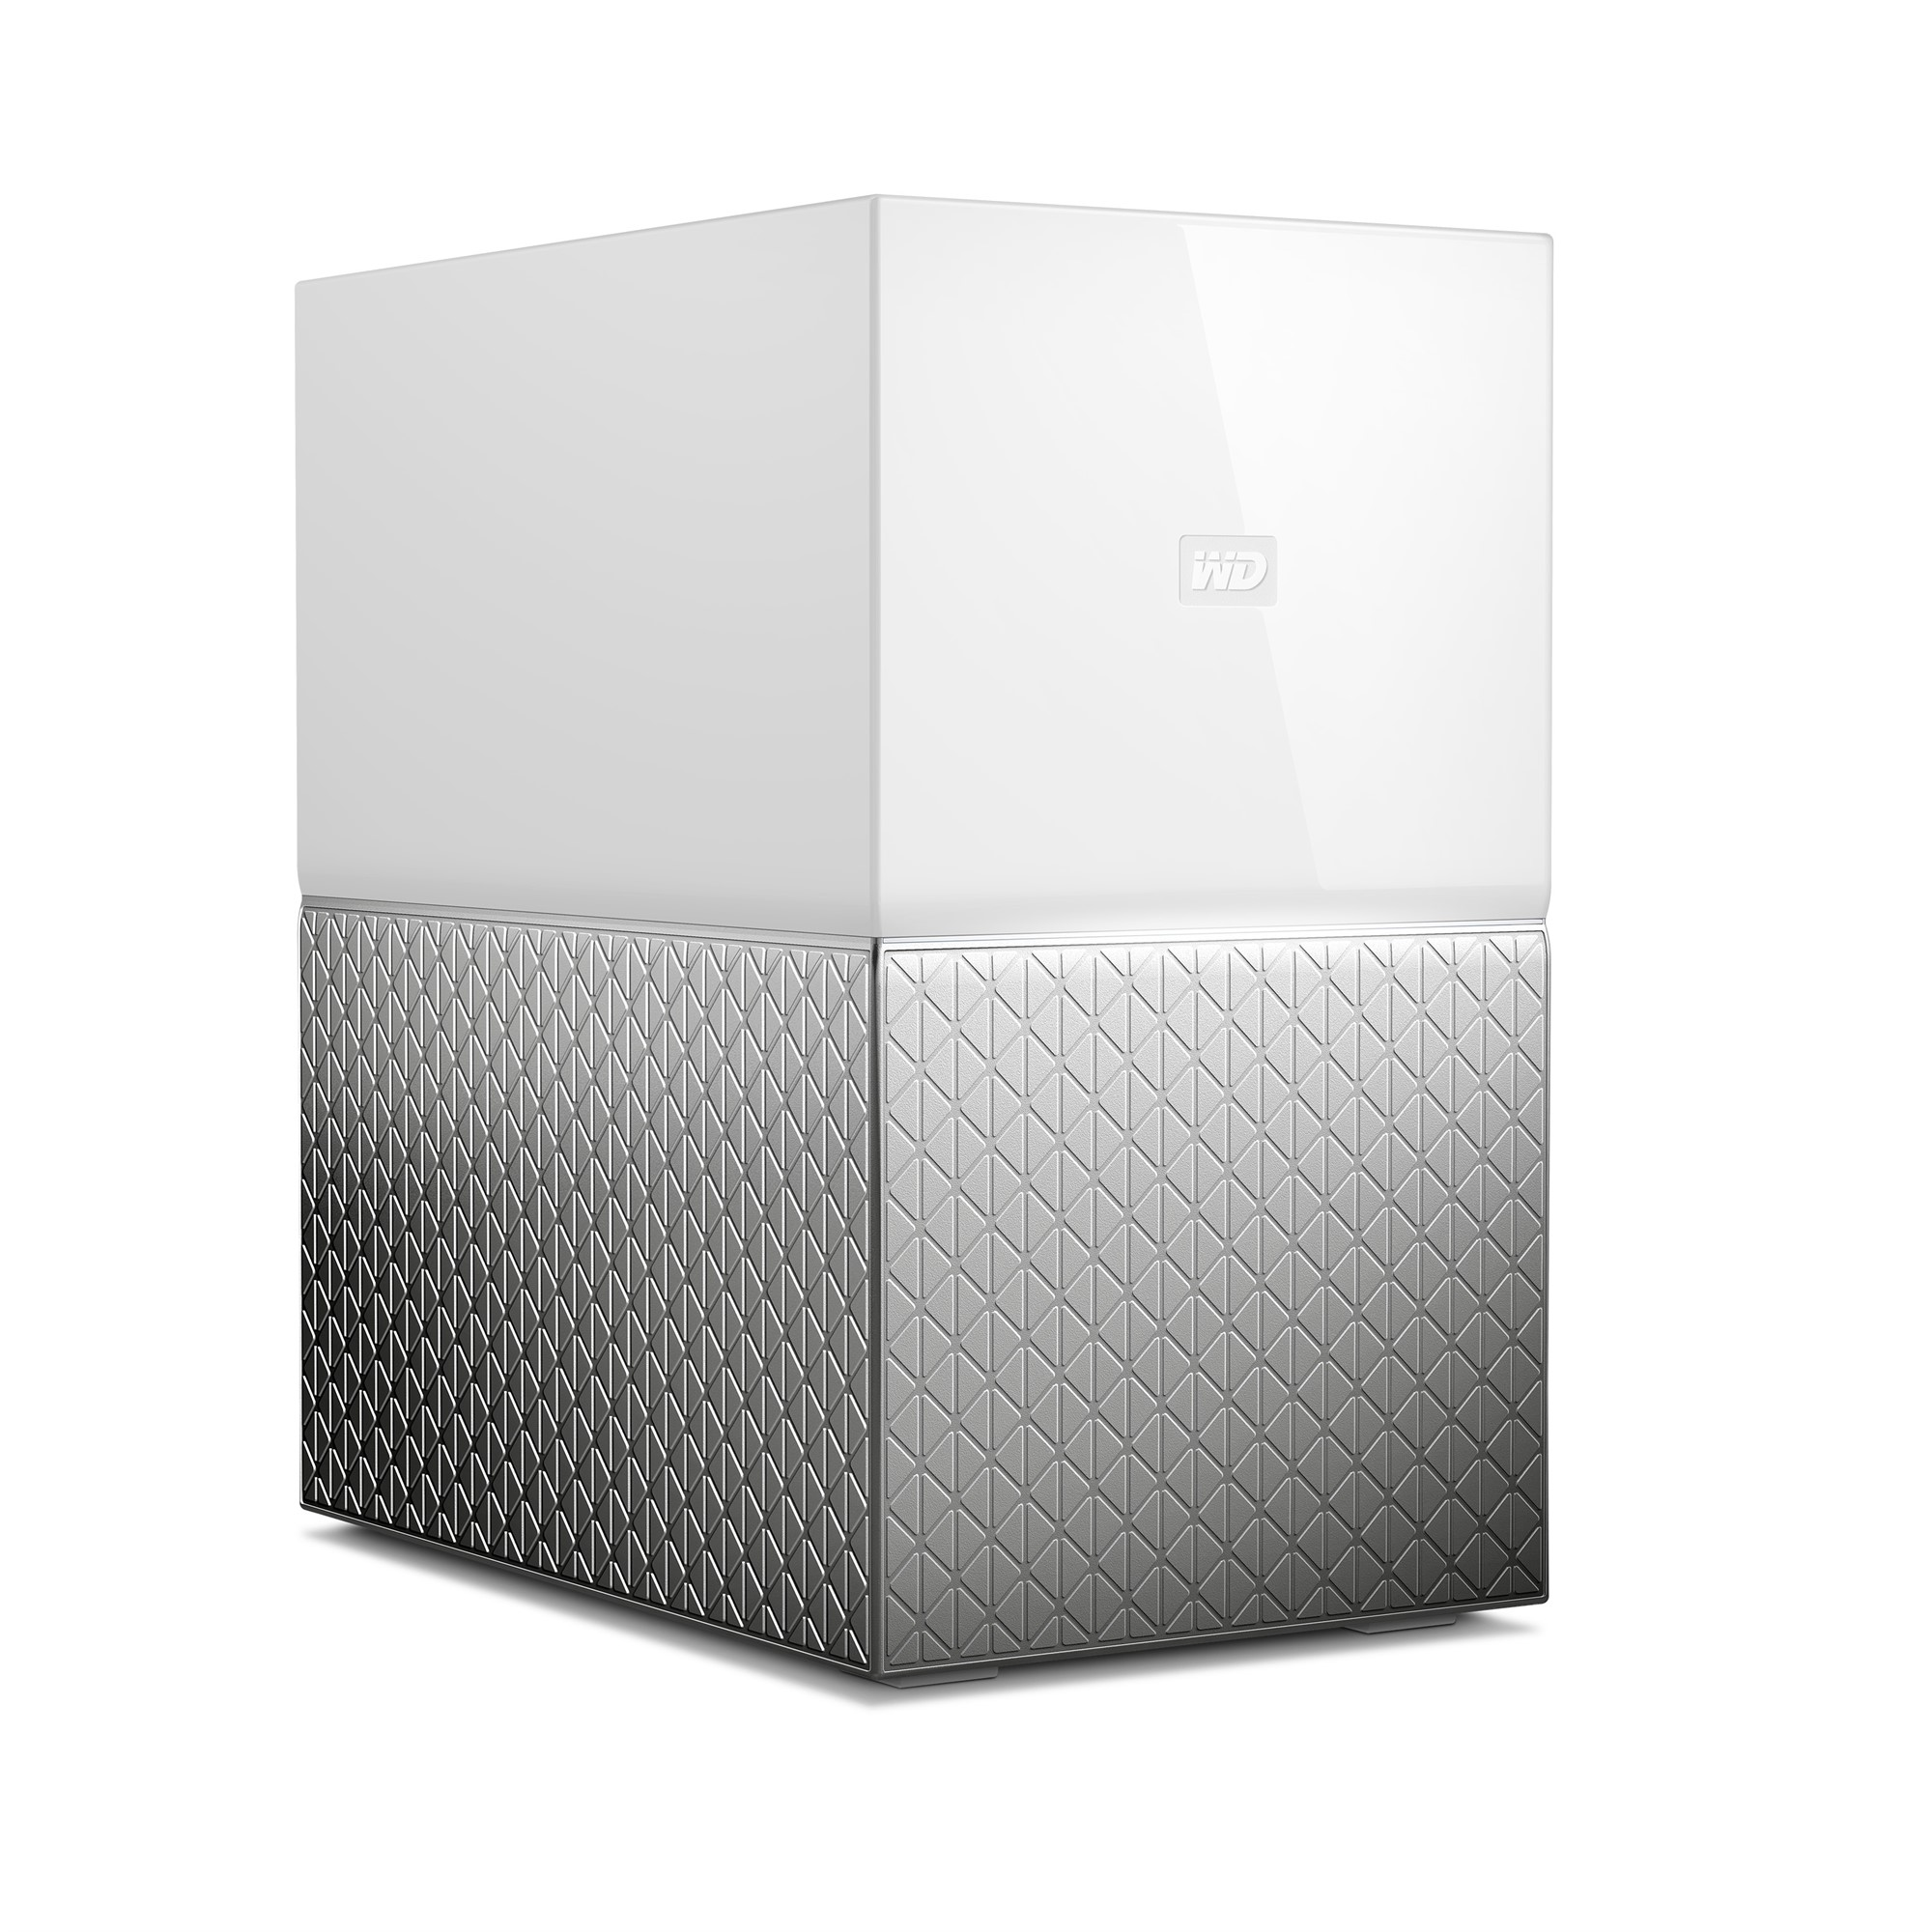 WESTERN DIGITAL MY CLOUD HOME DUO 12TB ETHERNET LAN WHITE PERSONAL STORAGE DEVICE